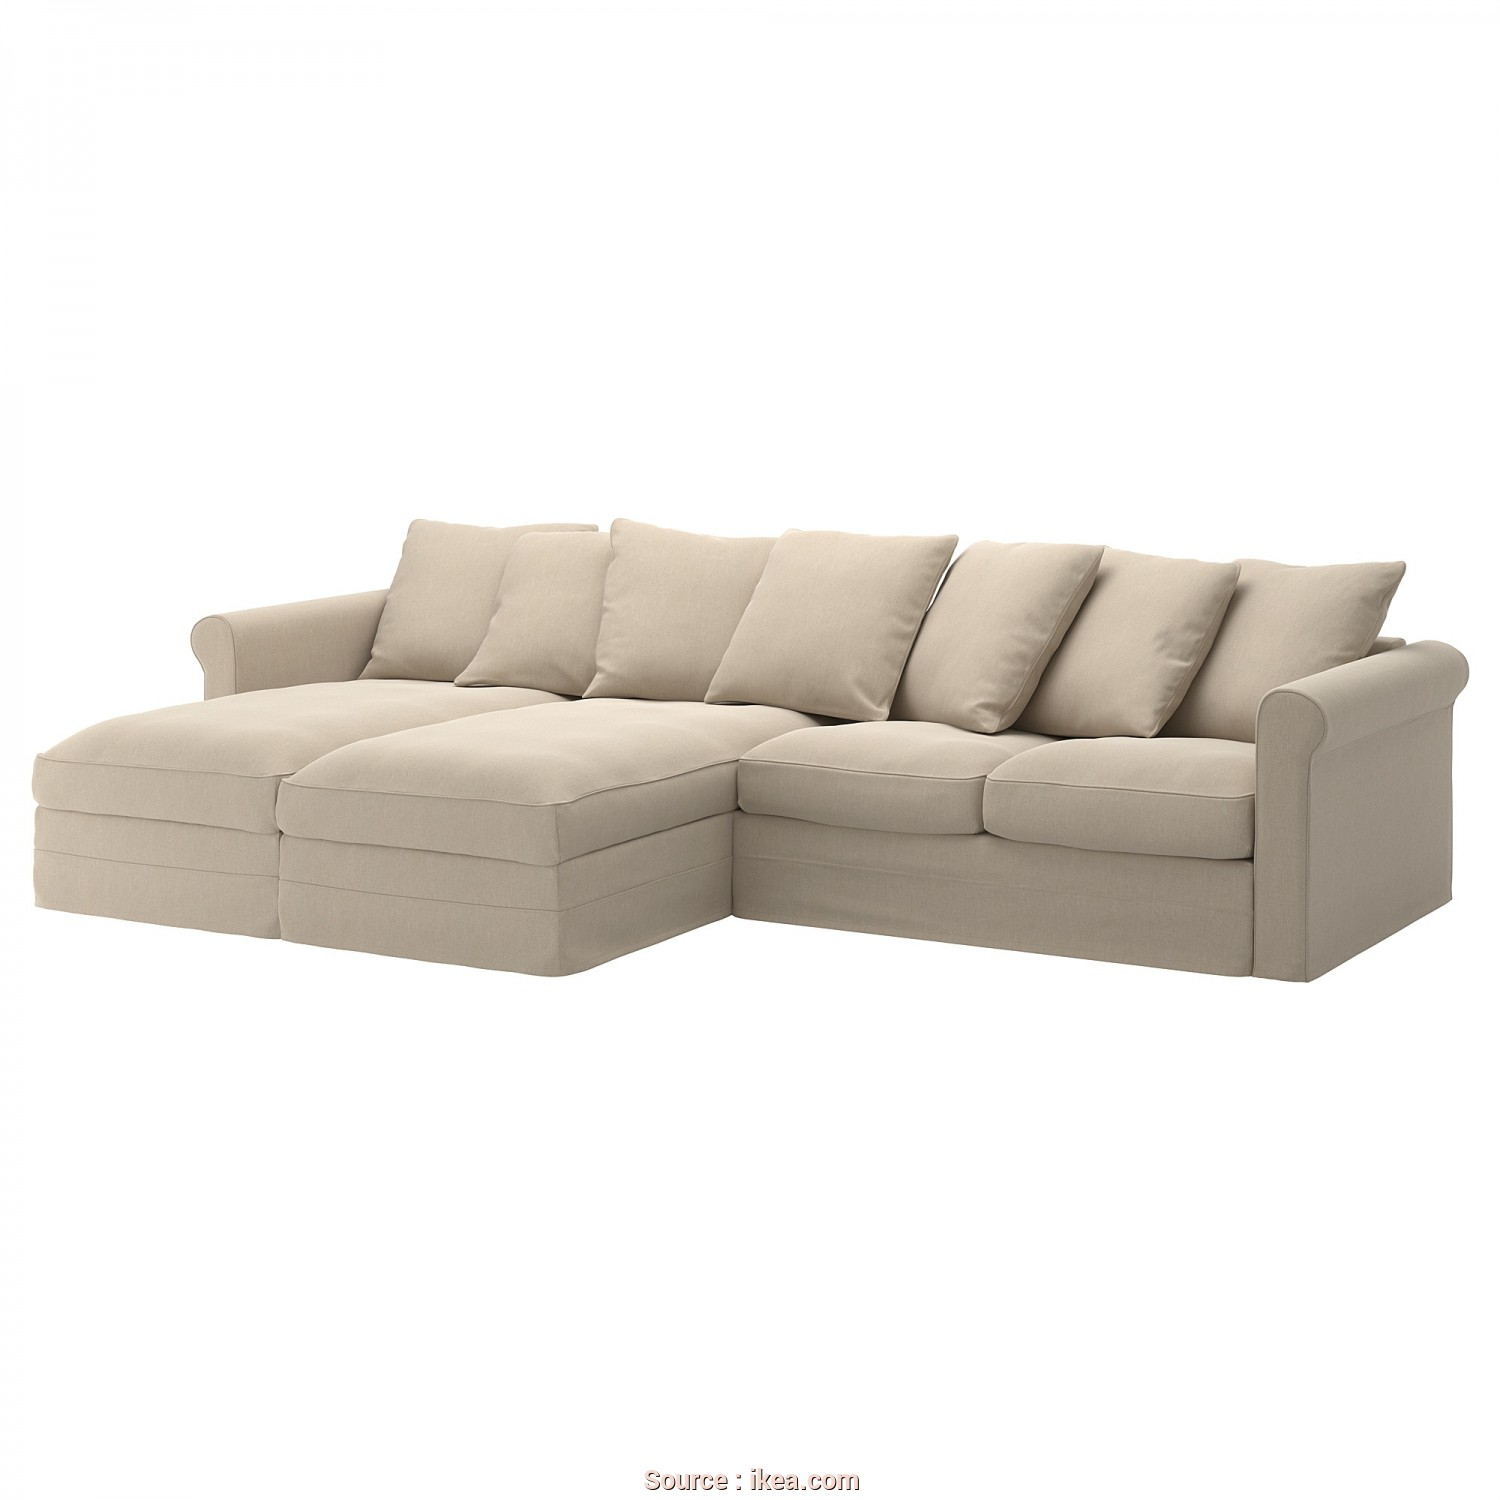 Ikea Klippan 4 Seater Sofa Uk, Locale IKEA GRÖNLID 4-Seat Sofa, Cover Is Easy To Keep Clean Since It Is